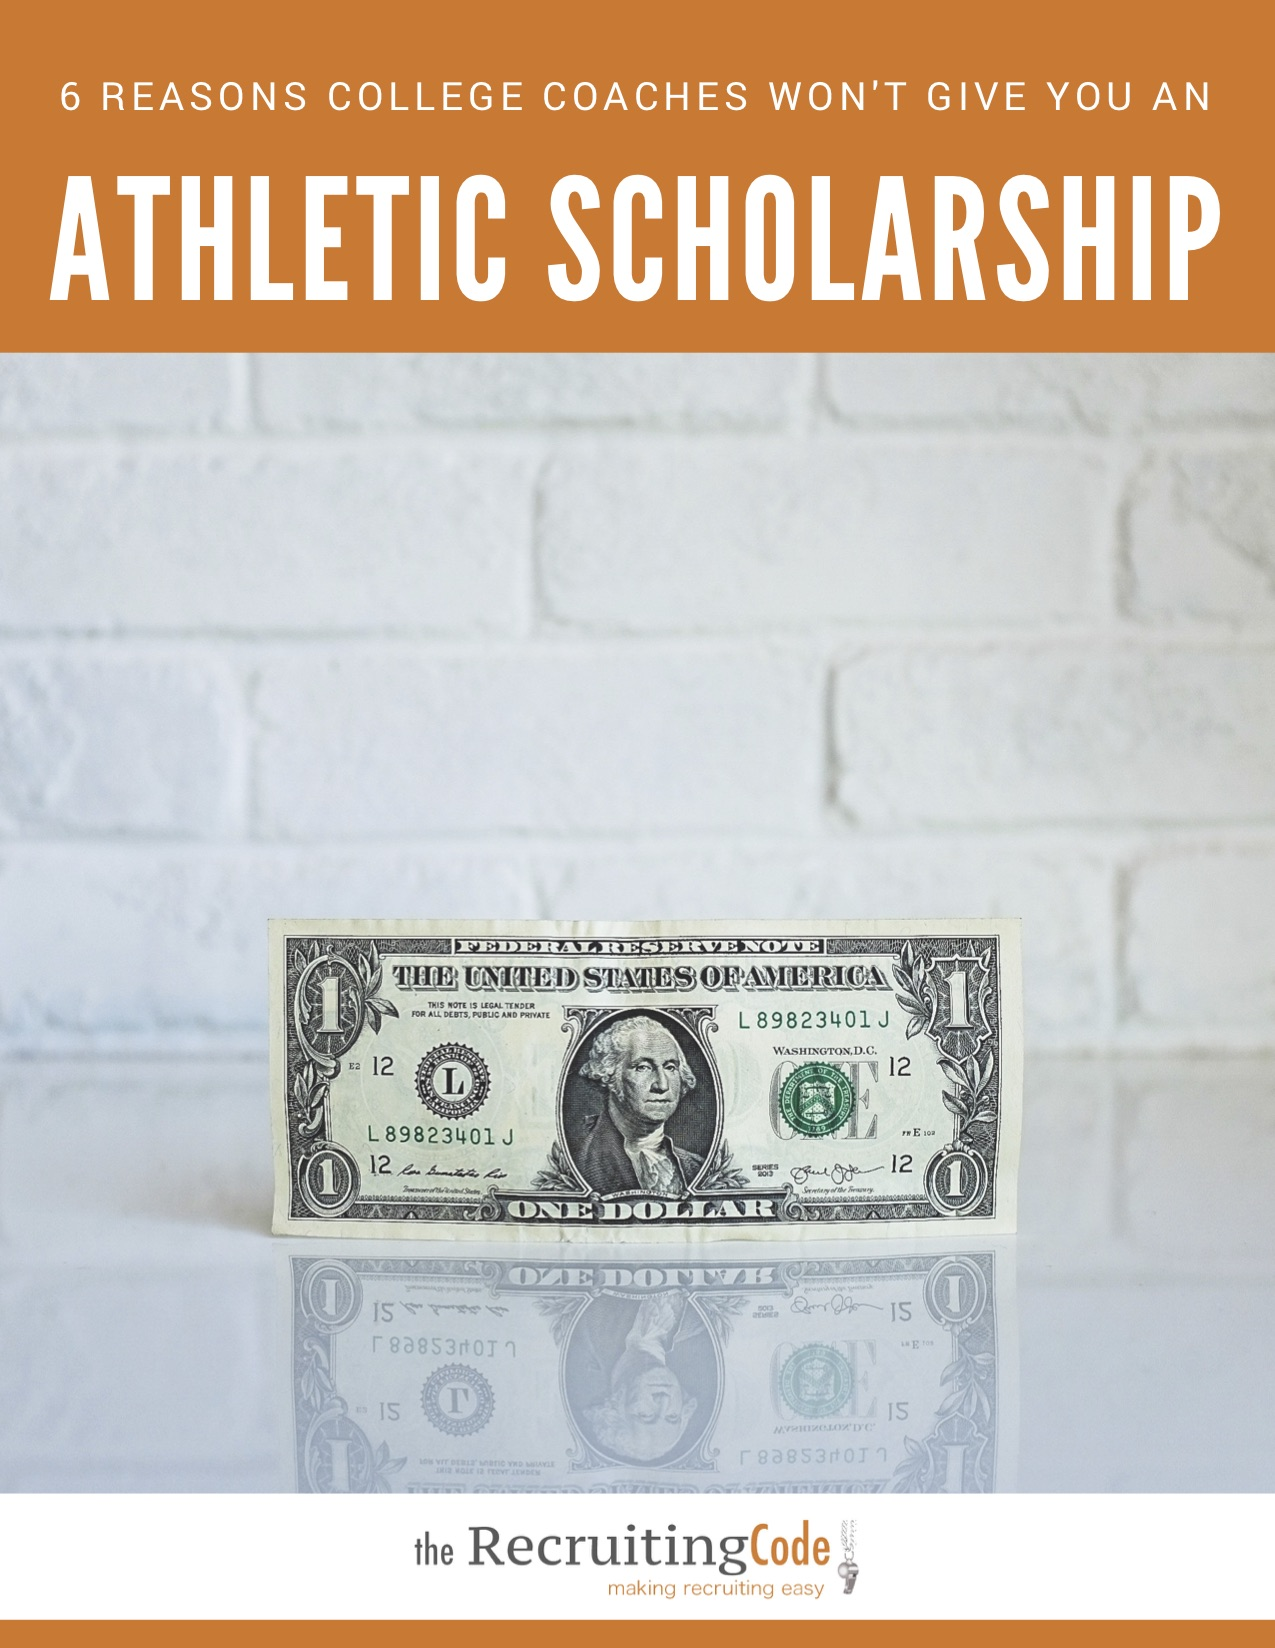 6 reasons college coaches won't give you an athletic scholarship